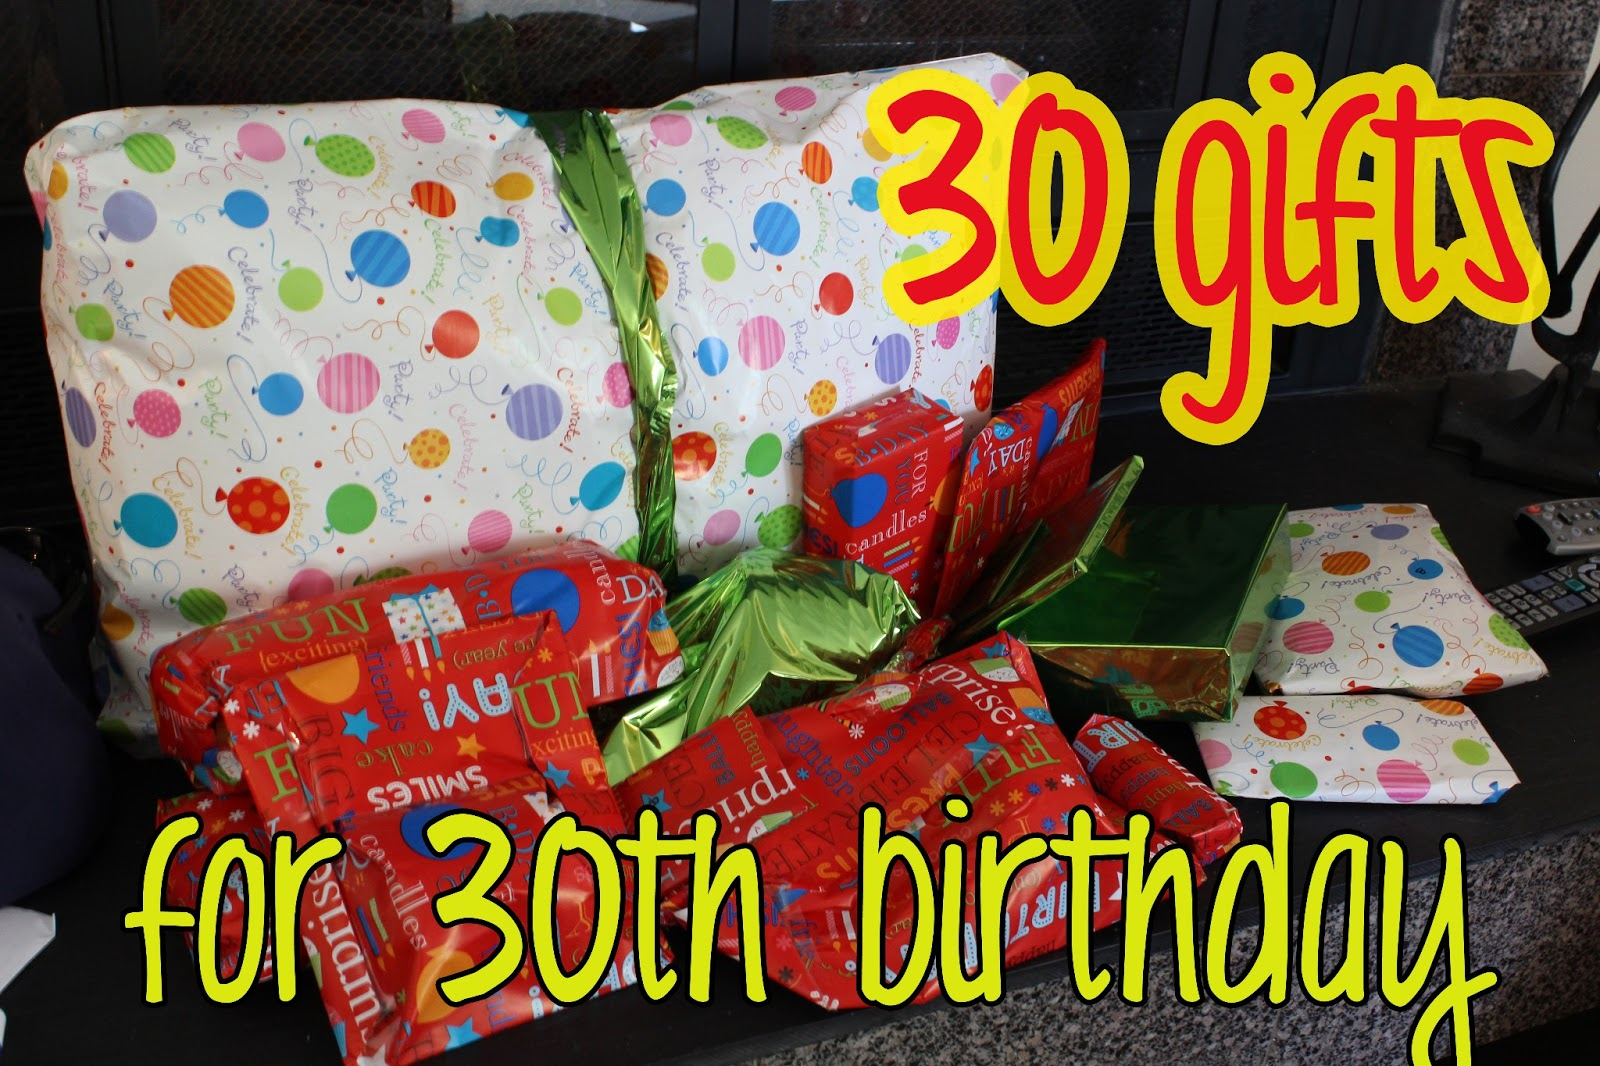 Love elizabethany gift idea 30 gifts for 30th birthday for 30th birthday decoration ideas for her